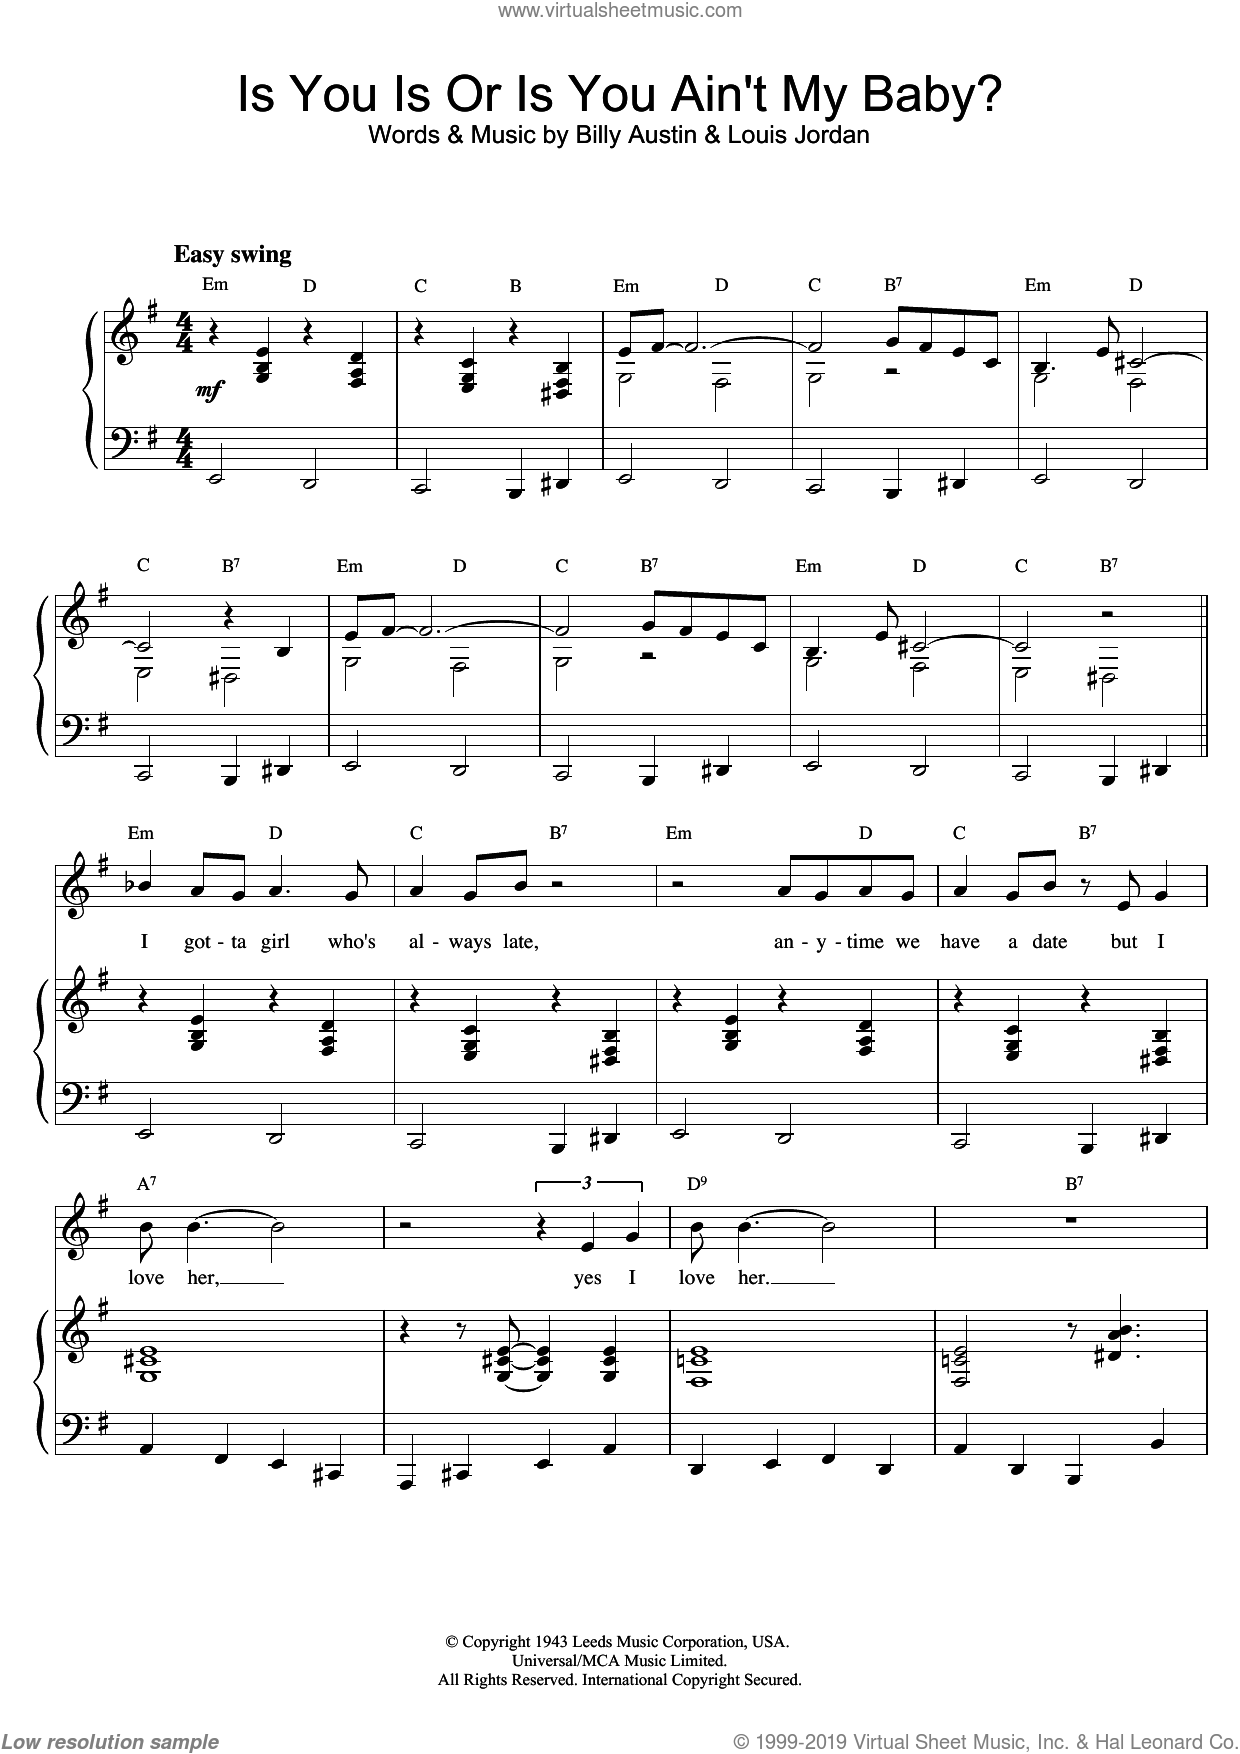 Is You Is Or Is You Ain't My Baby? sheet music for voice and piano by Louis Armstrong, Austin,Billy, Billy Austin and Louis Jordan, intermediate skill level